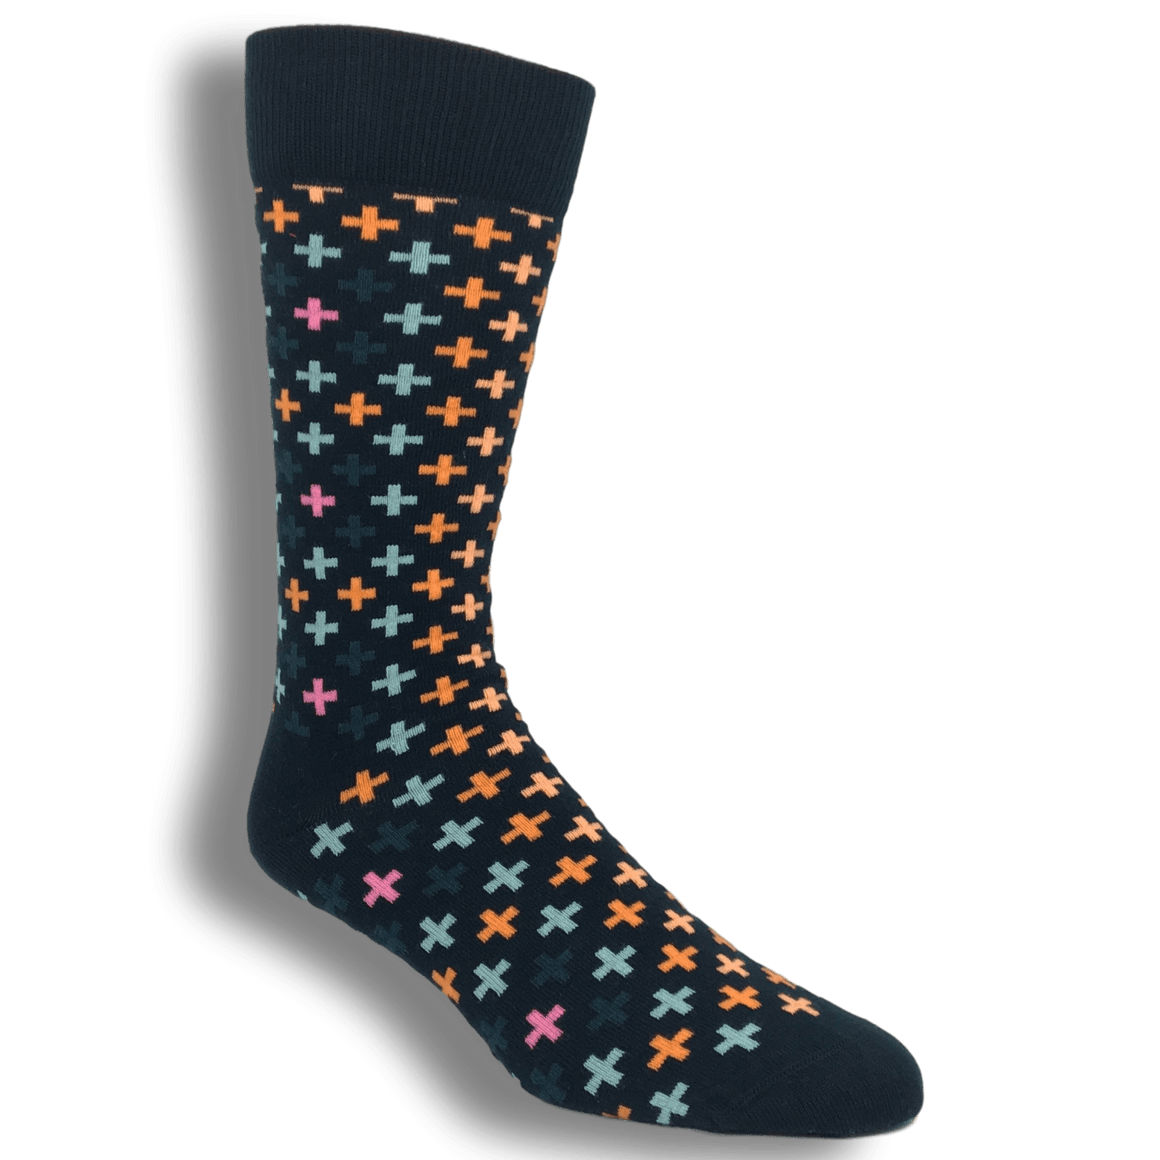 Multi Colored Plus Socks by Happy Socks - The Sock Spot